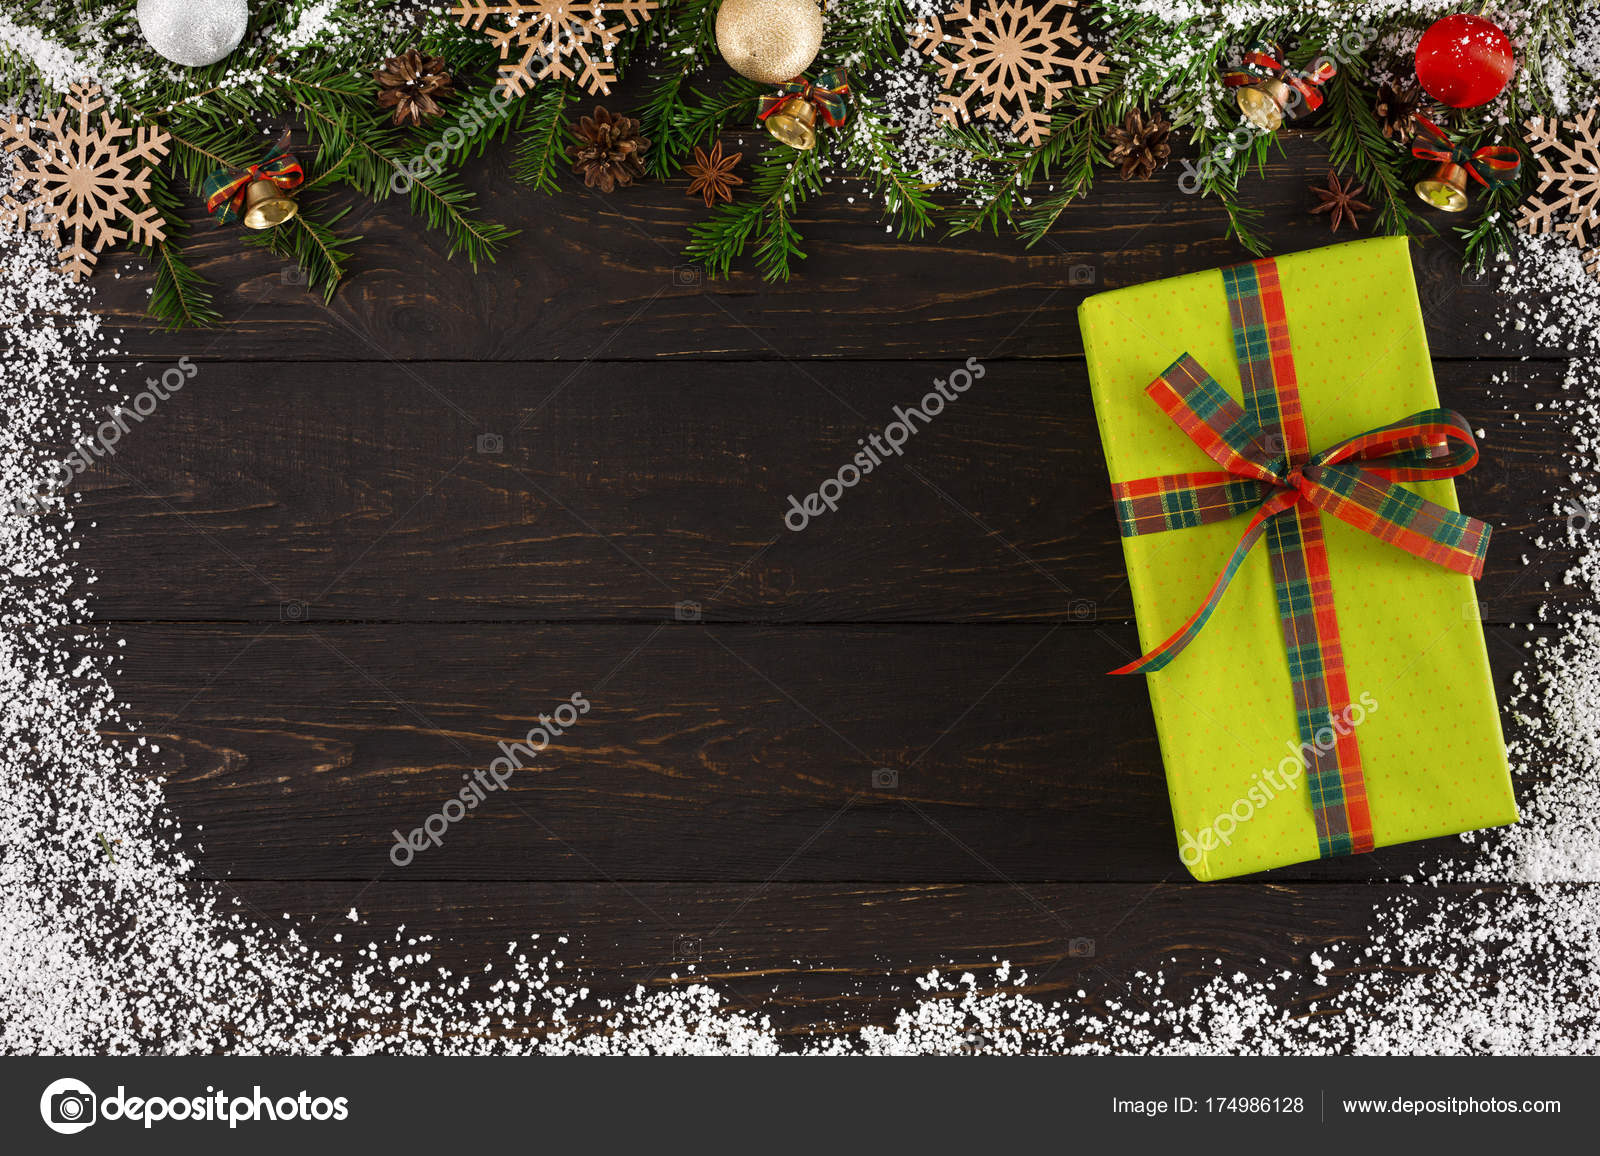 Christmas decoration, gift box and garland frame background